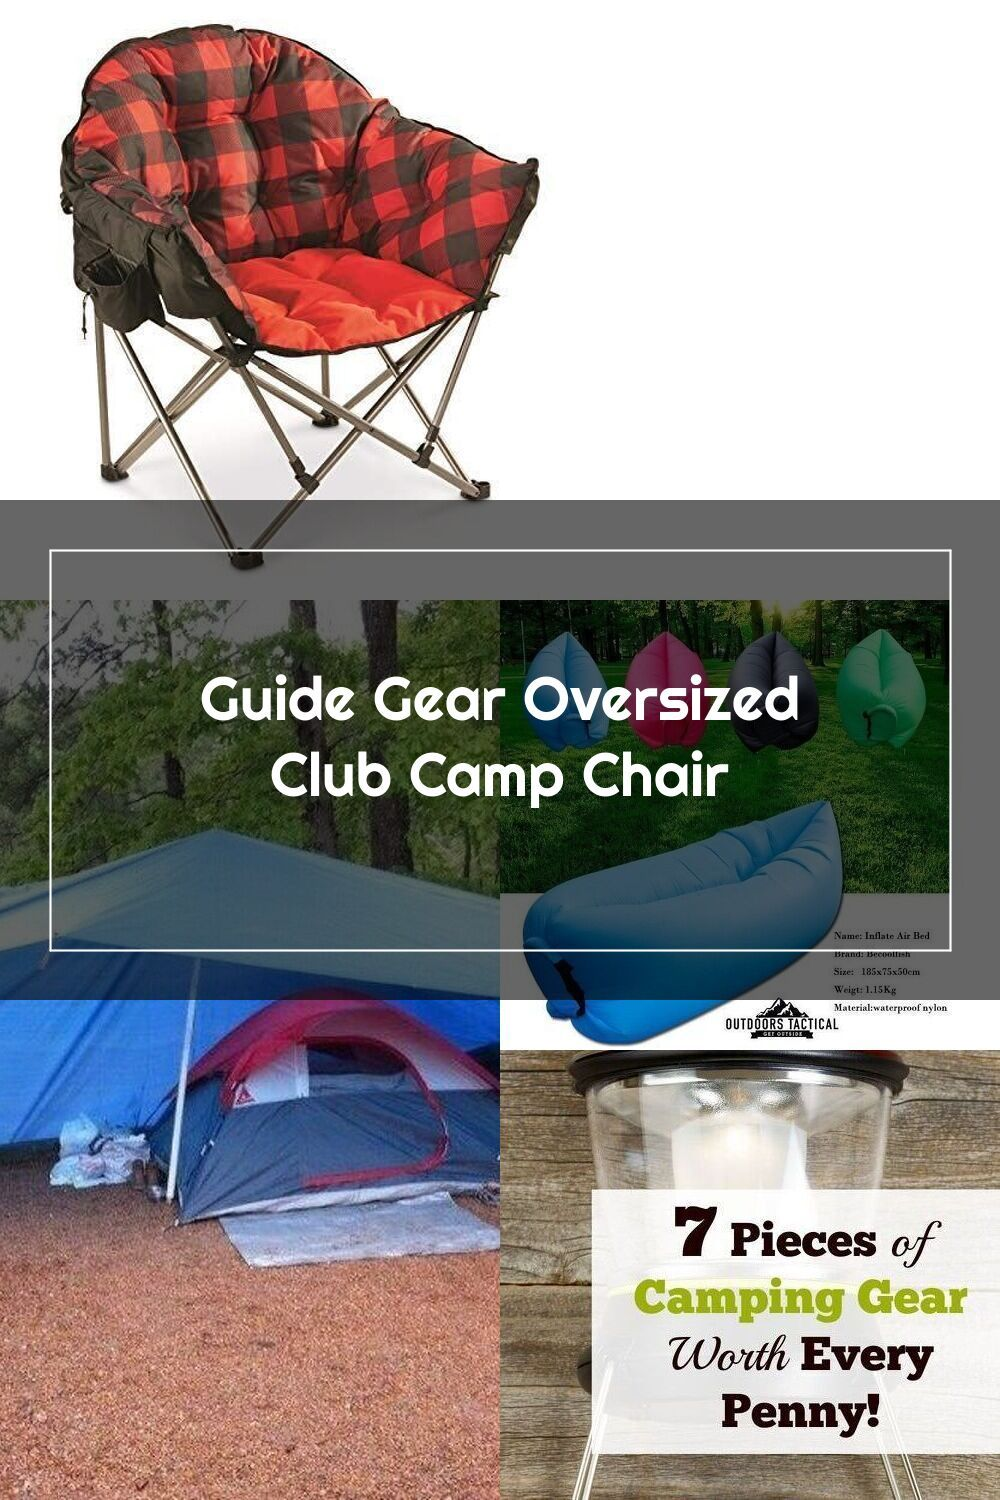 Guide Gear Oversized Club Camp Chair, 500lb. Capacity